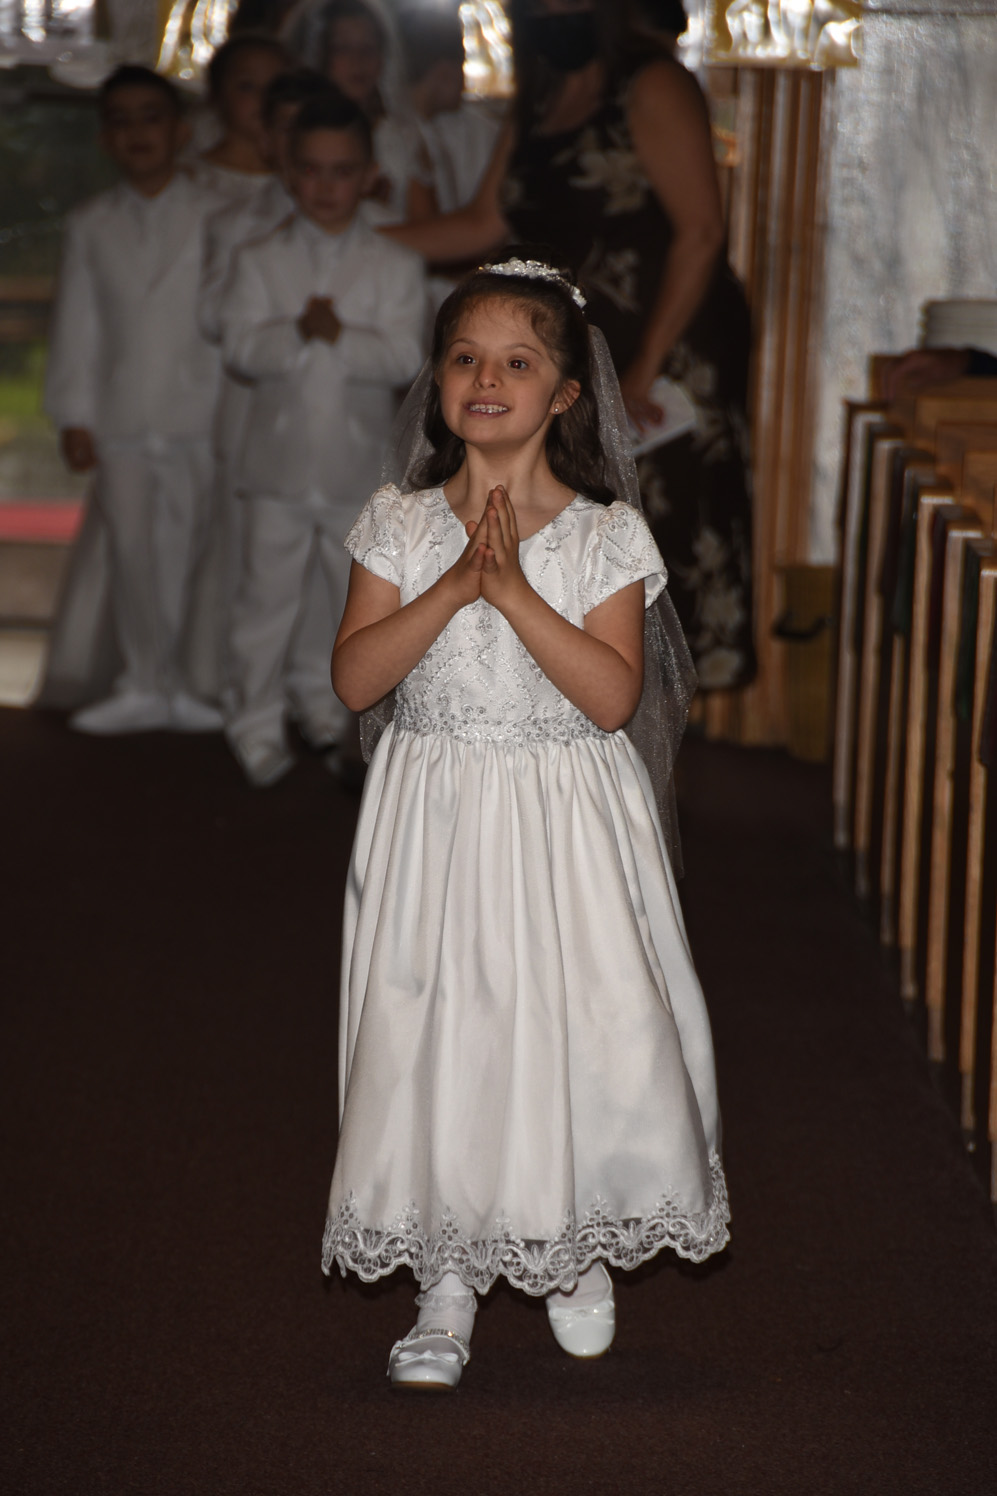 FIRST-COMMUNION-MAY-2-2021-1001001153